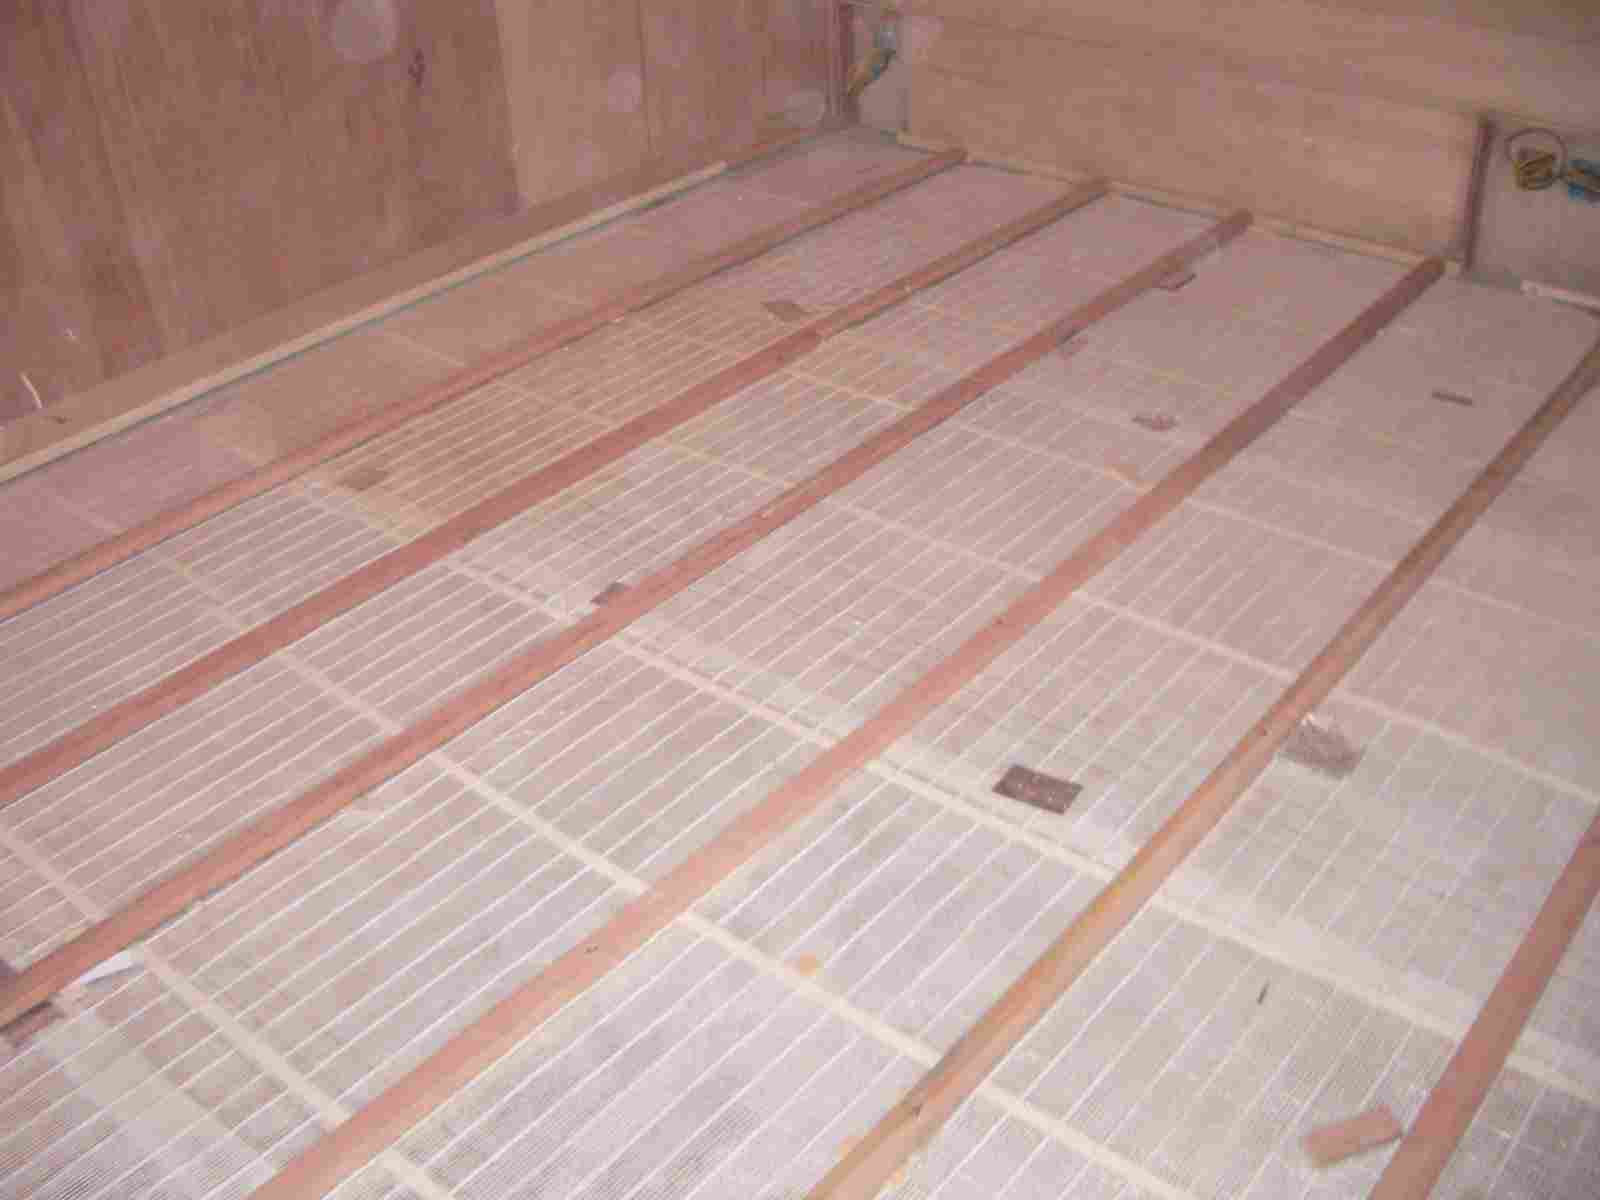 heating system, under floor warming, heated floor, heating mat, heating cable, heting elements